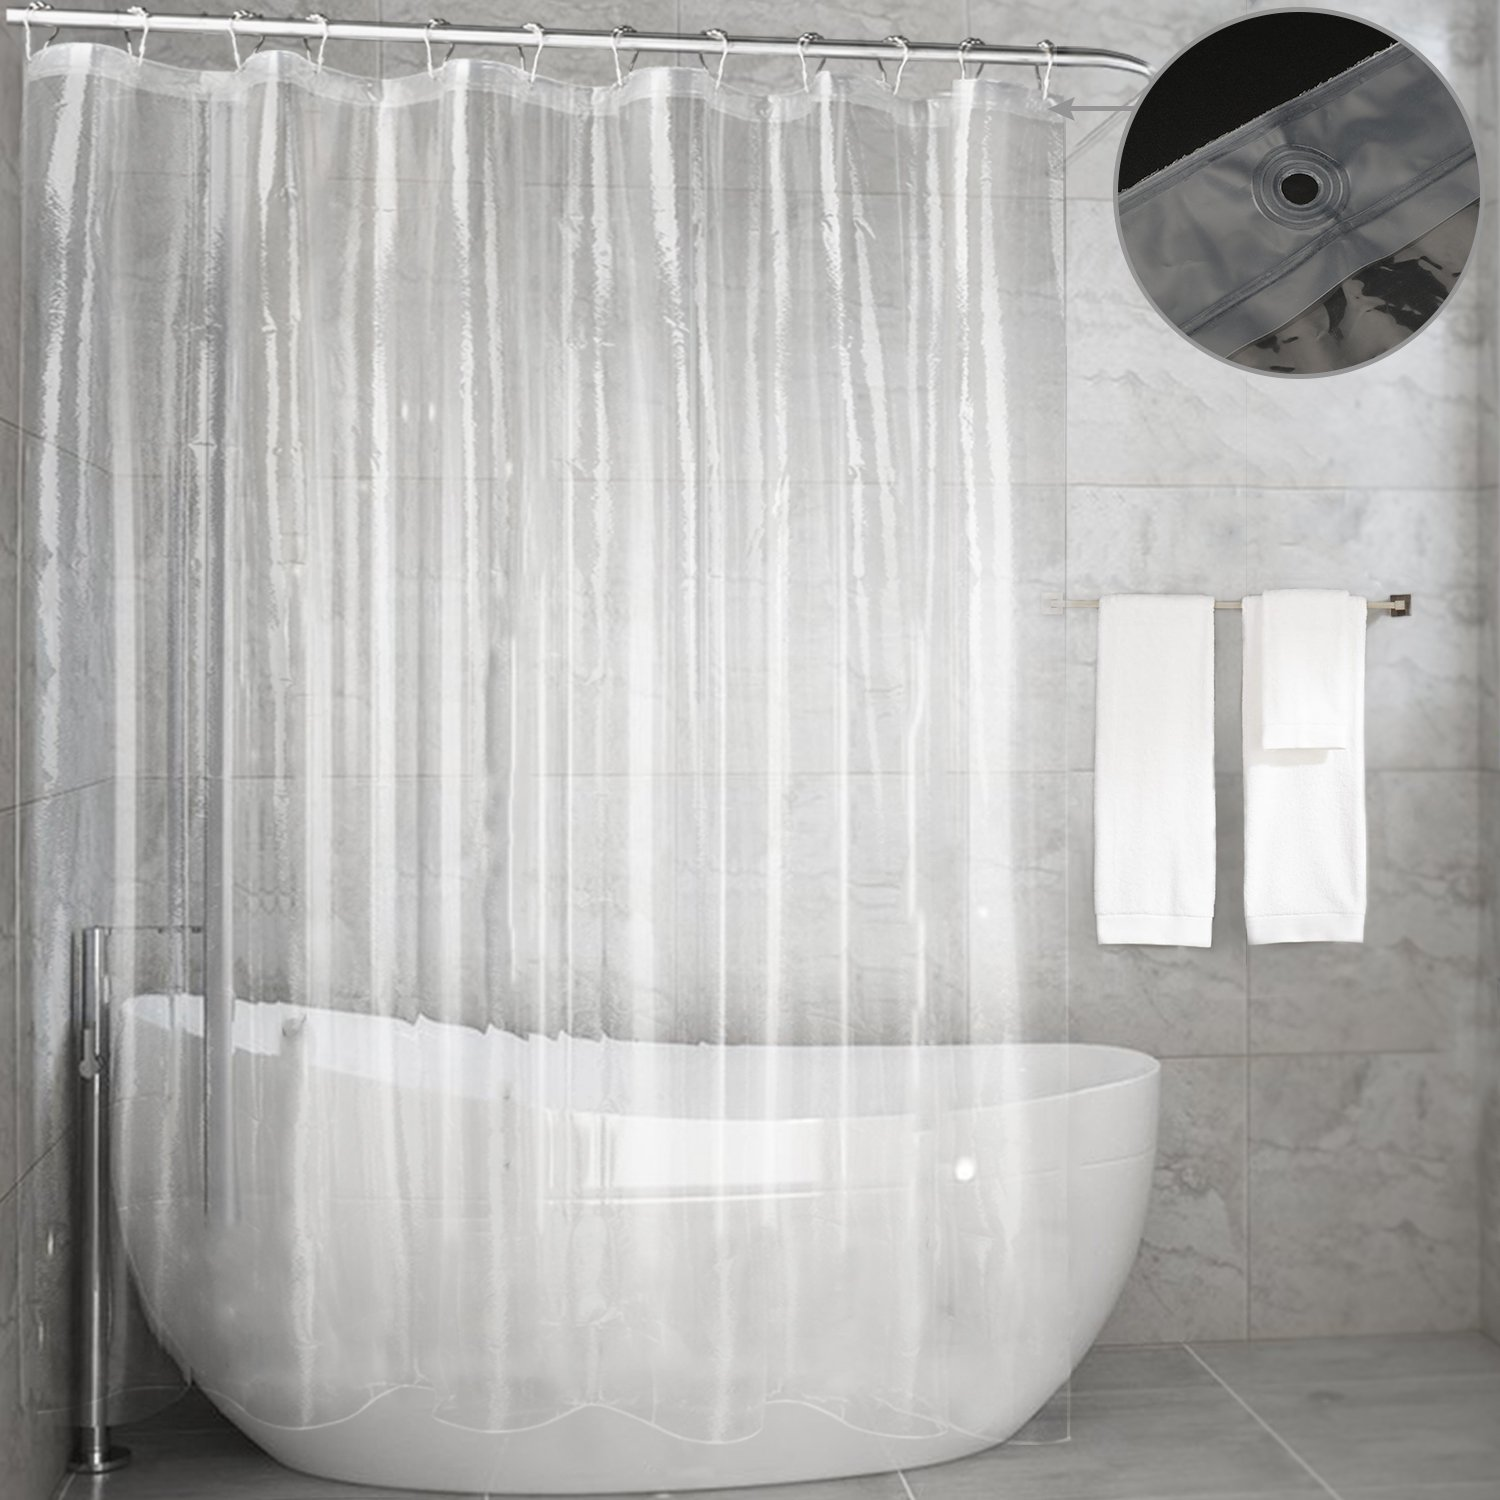 Get Quotations Shower Curtain Liner MoldMildew Resistant Waterproof Anti Bacterial 72x72 Inch Eco Friendly